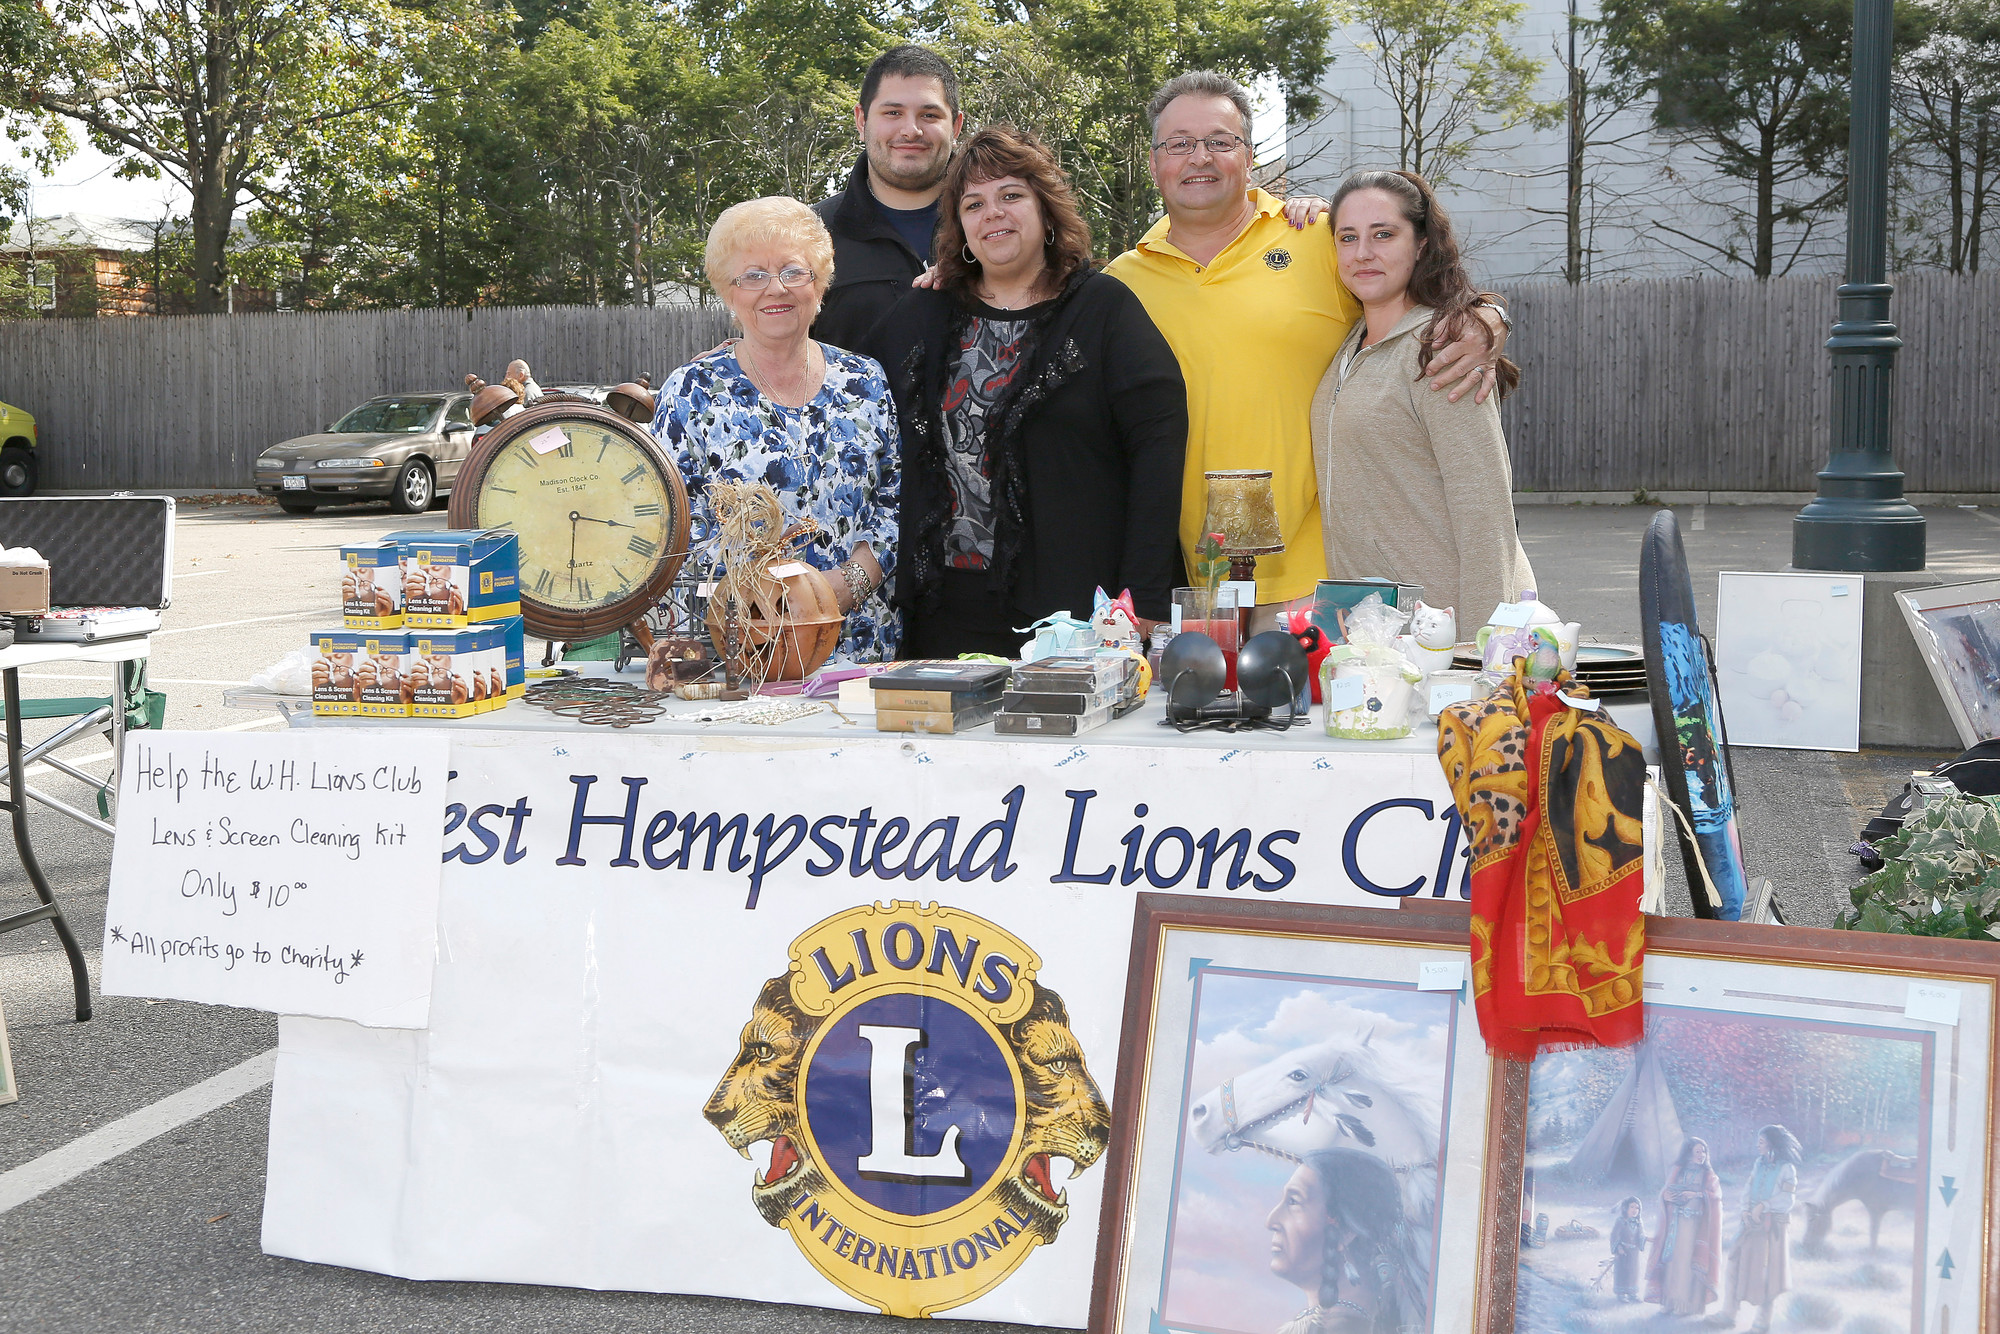 The West Hempstead Lions Club